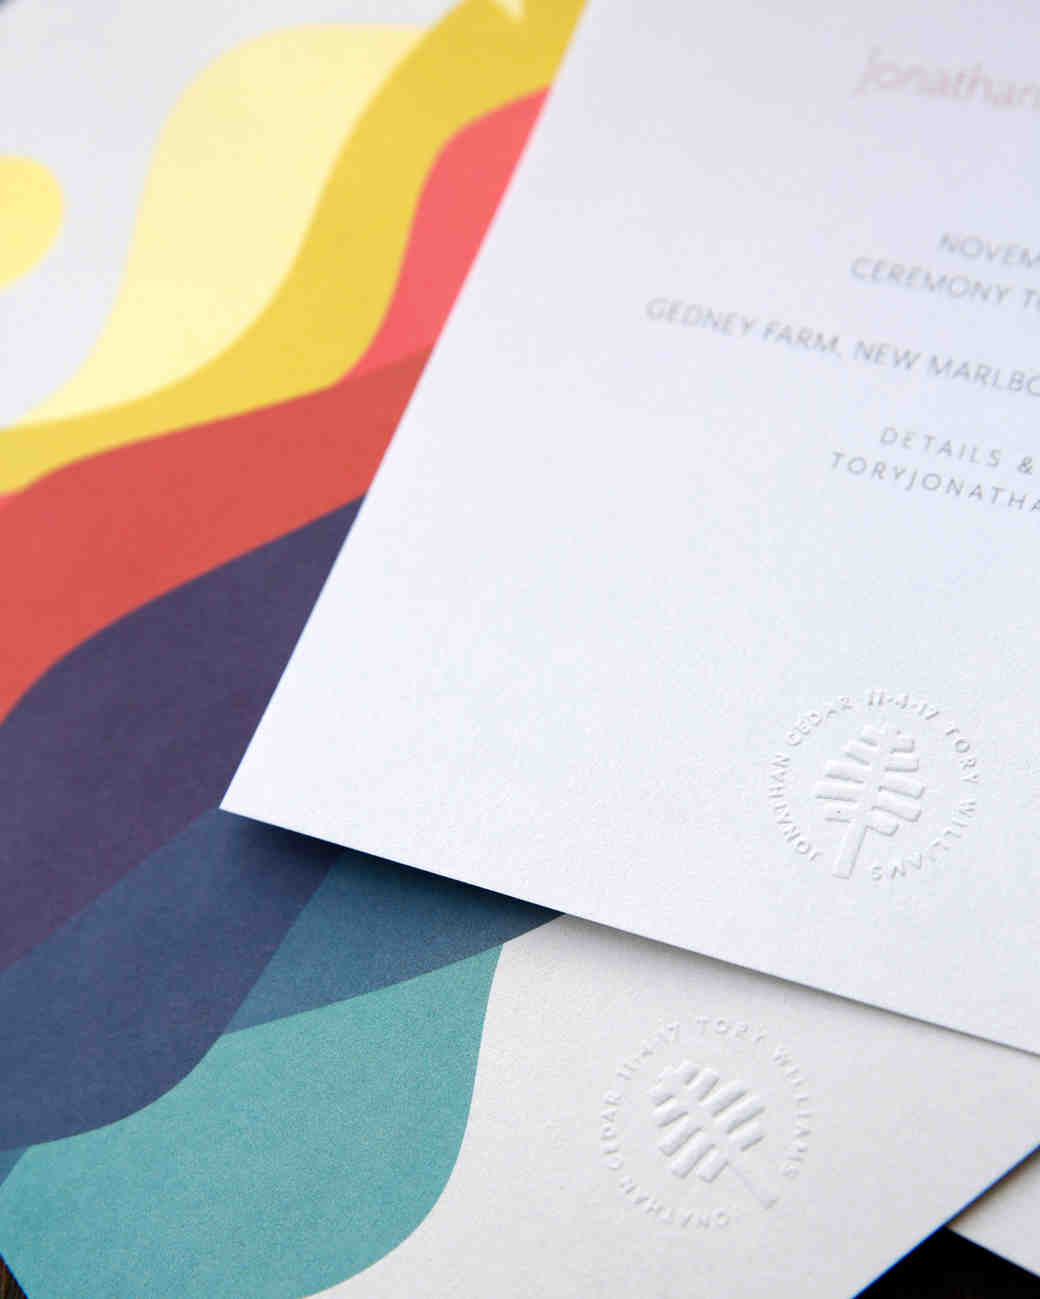 tory jonathan wedding invite